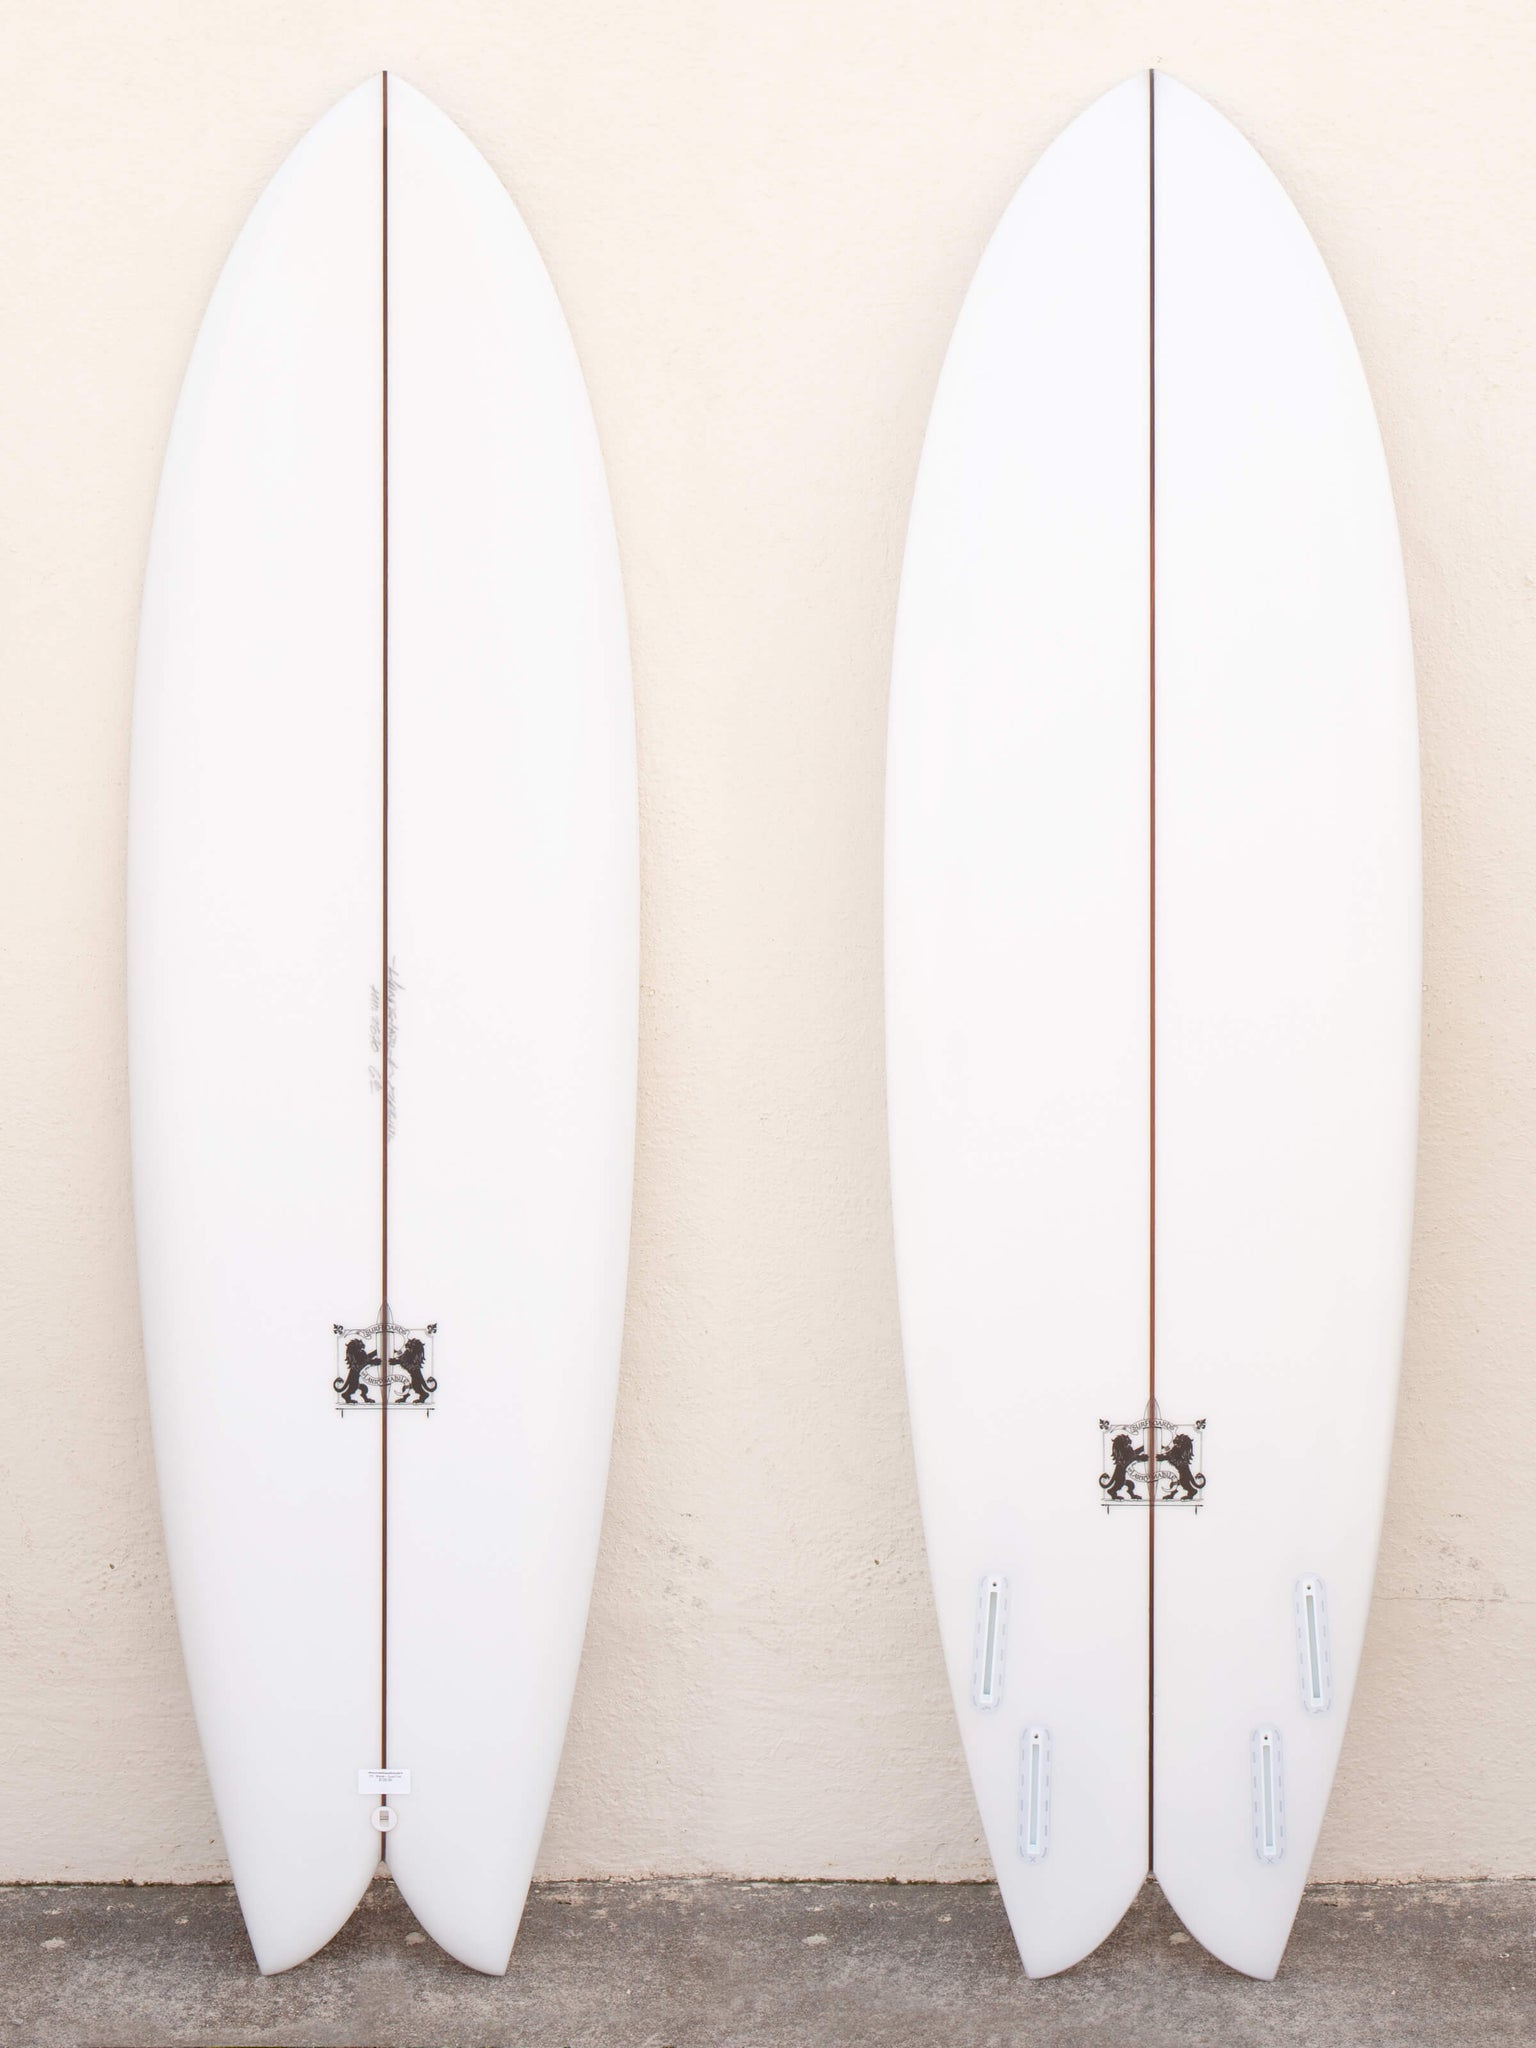 6'6 Mabile Quad Fish